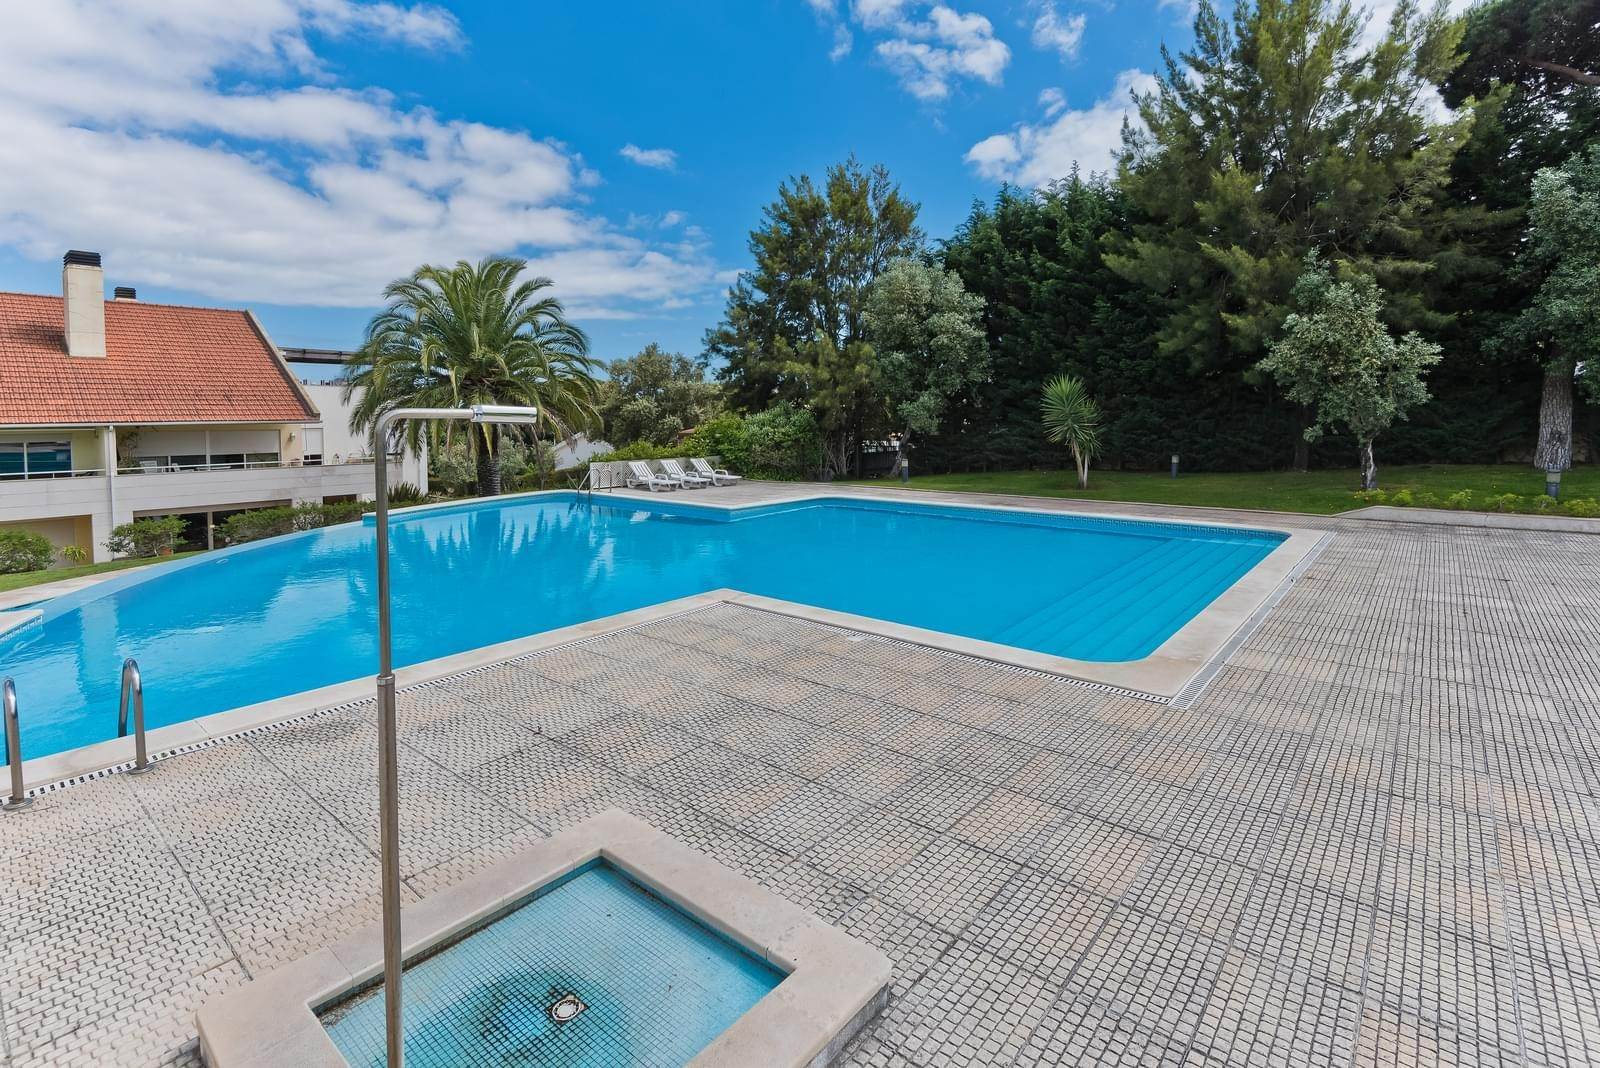 25. Appartamenti per Vendita alle ore 3+1 bedroom apartment in Bicesse, Cascais, placed in a private condominium.The apartment, with 215 sqm and a 111 sqm ter... Cascais, Portogallo